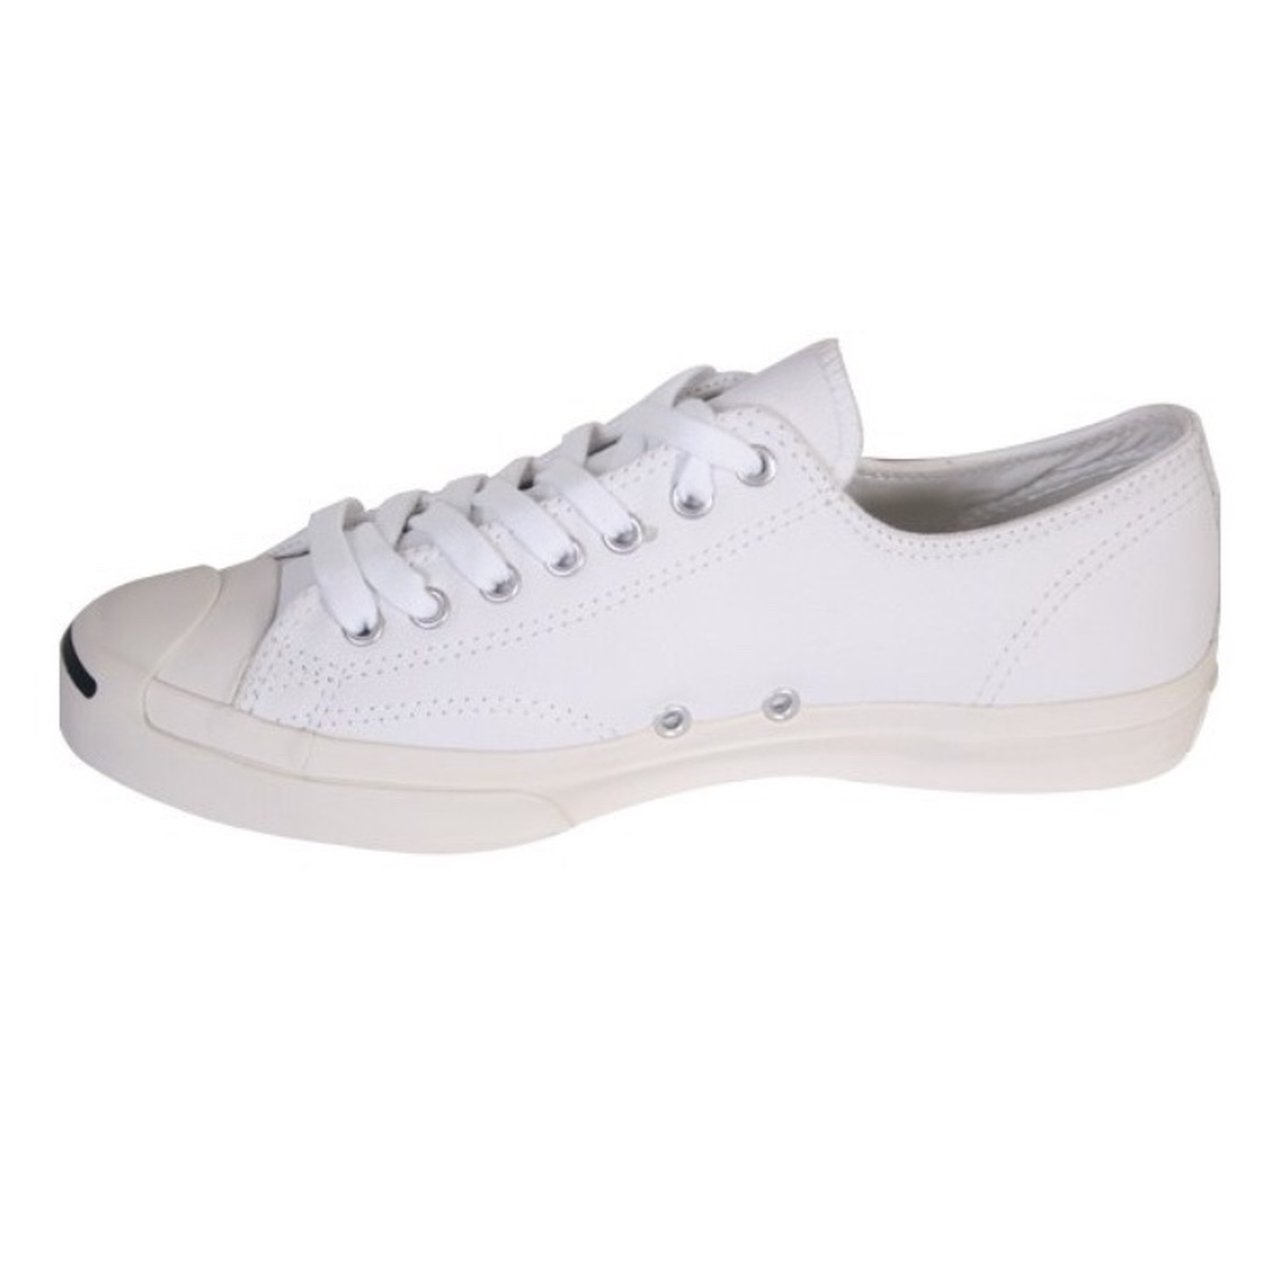 ae9ac53f529c Converse Jack Purcell White Leather Trainers 💥 NEW WITH UK - Depop